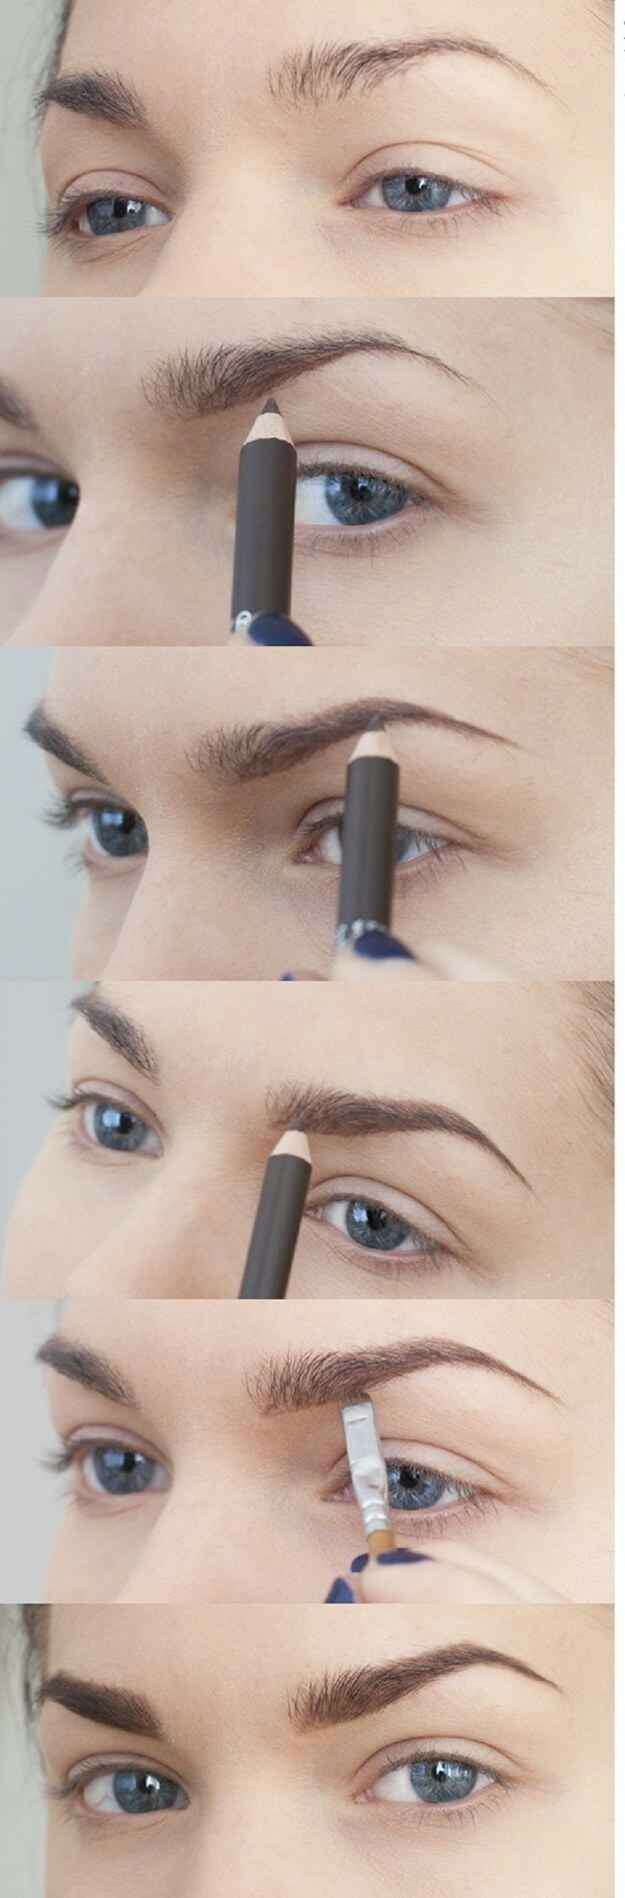 12. Fill in thin brows with a pencil or use brow powder and a brush. Use light, short strokes to mimic your natural eyebrow hairs. Make sure to start light. You can always add more if you need, but it's harder to remove brow product once it's already on the hairs.